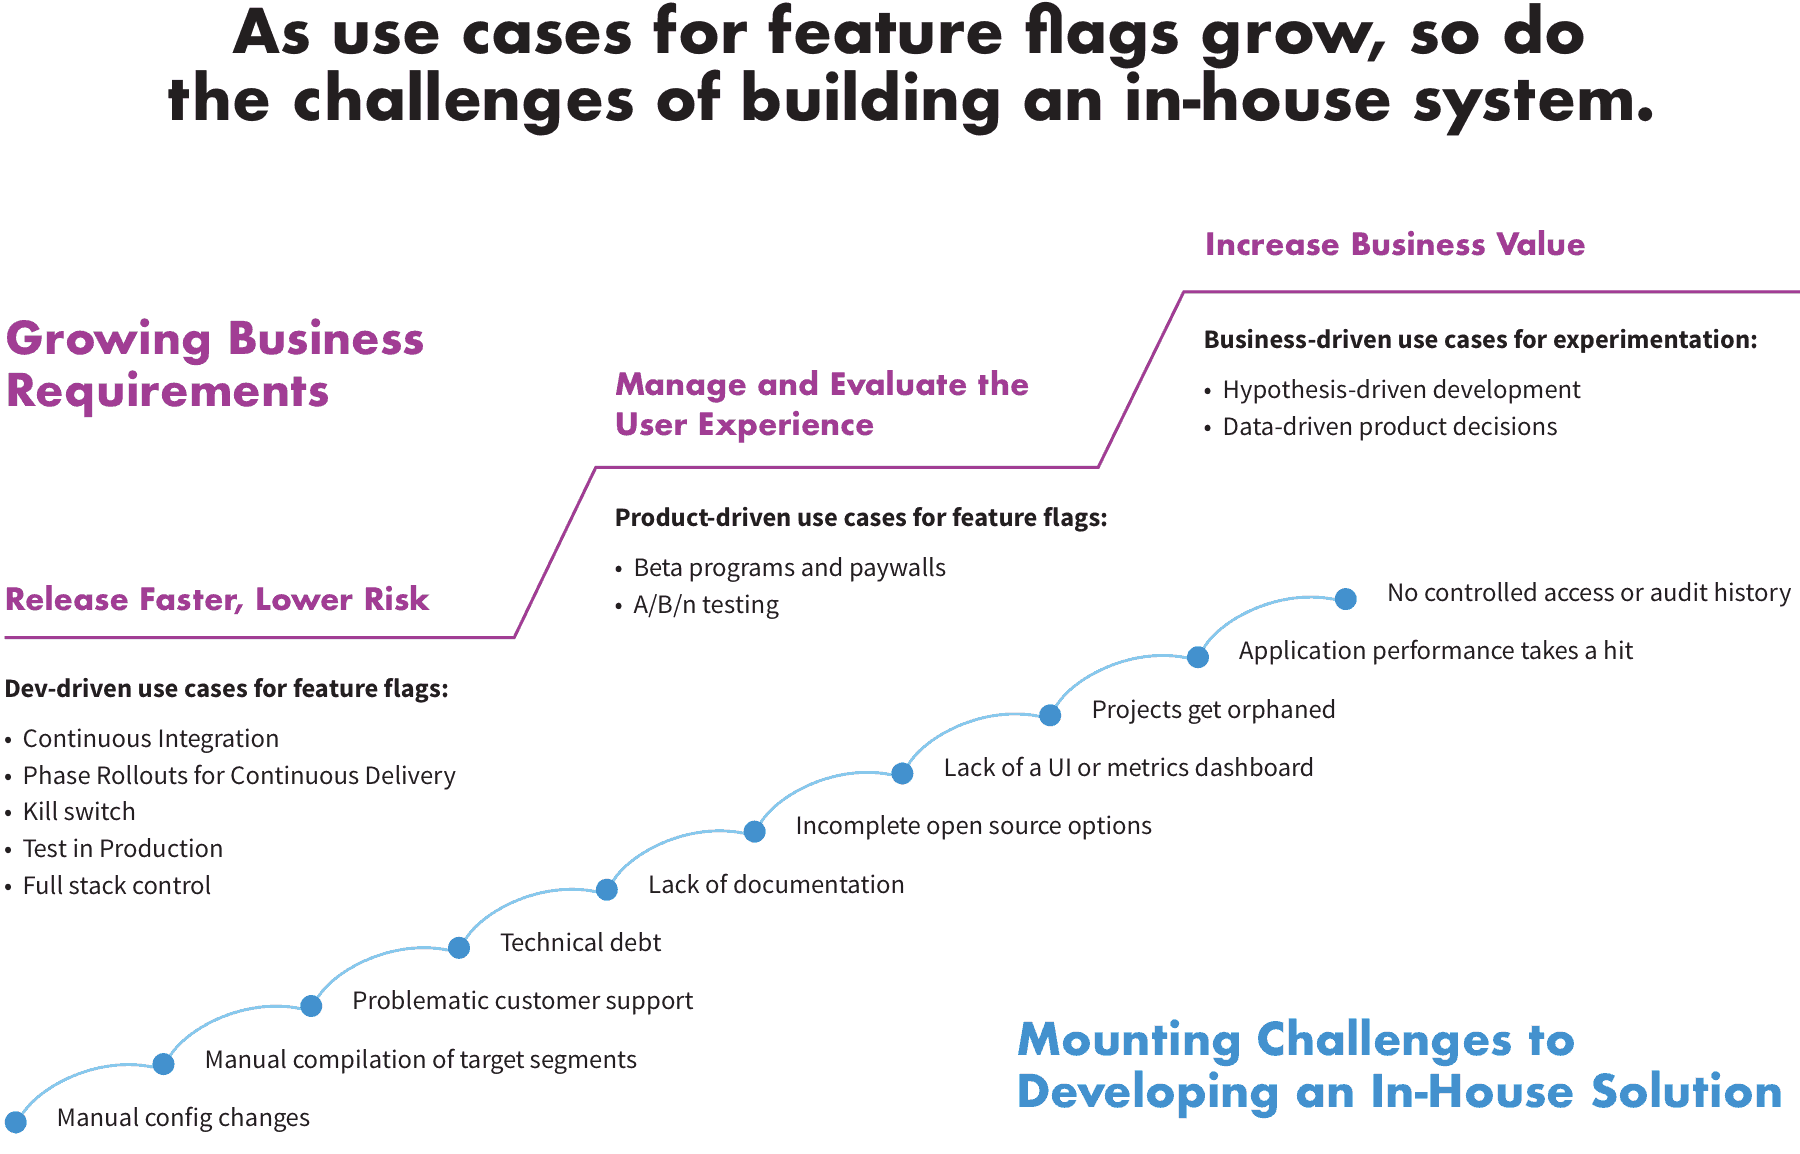 As use cases for feature flags grow, so do the challenges of building an in-house system.